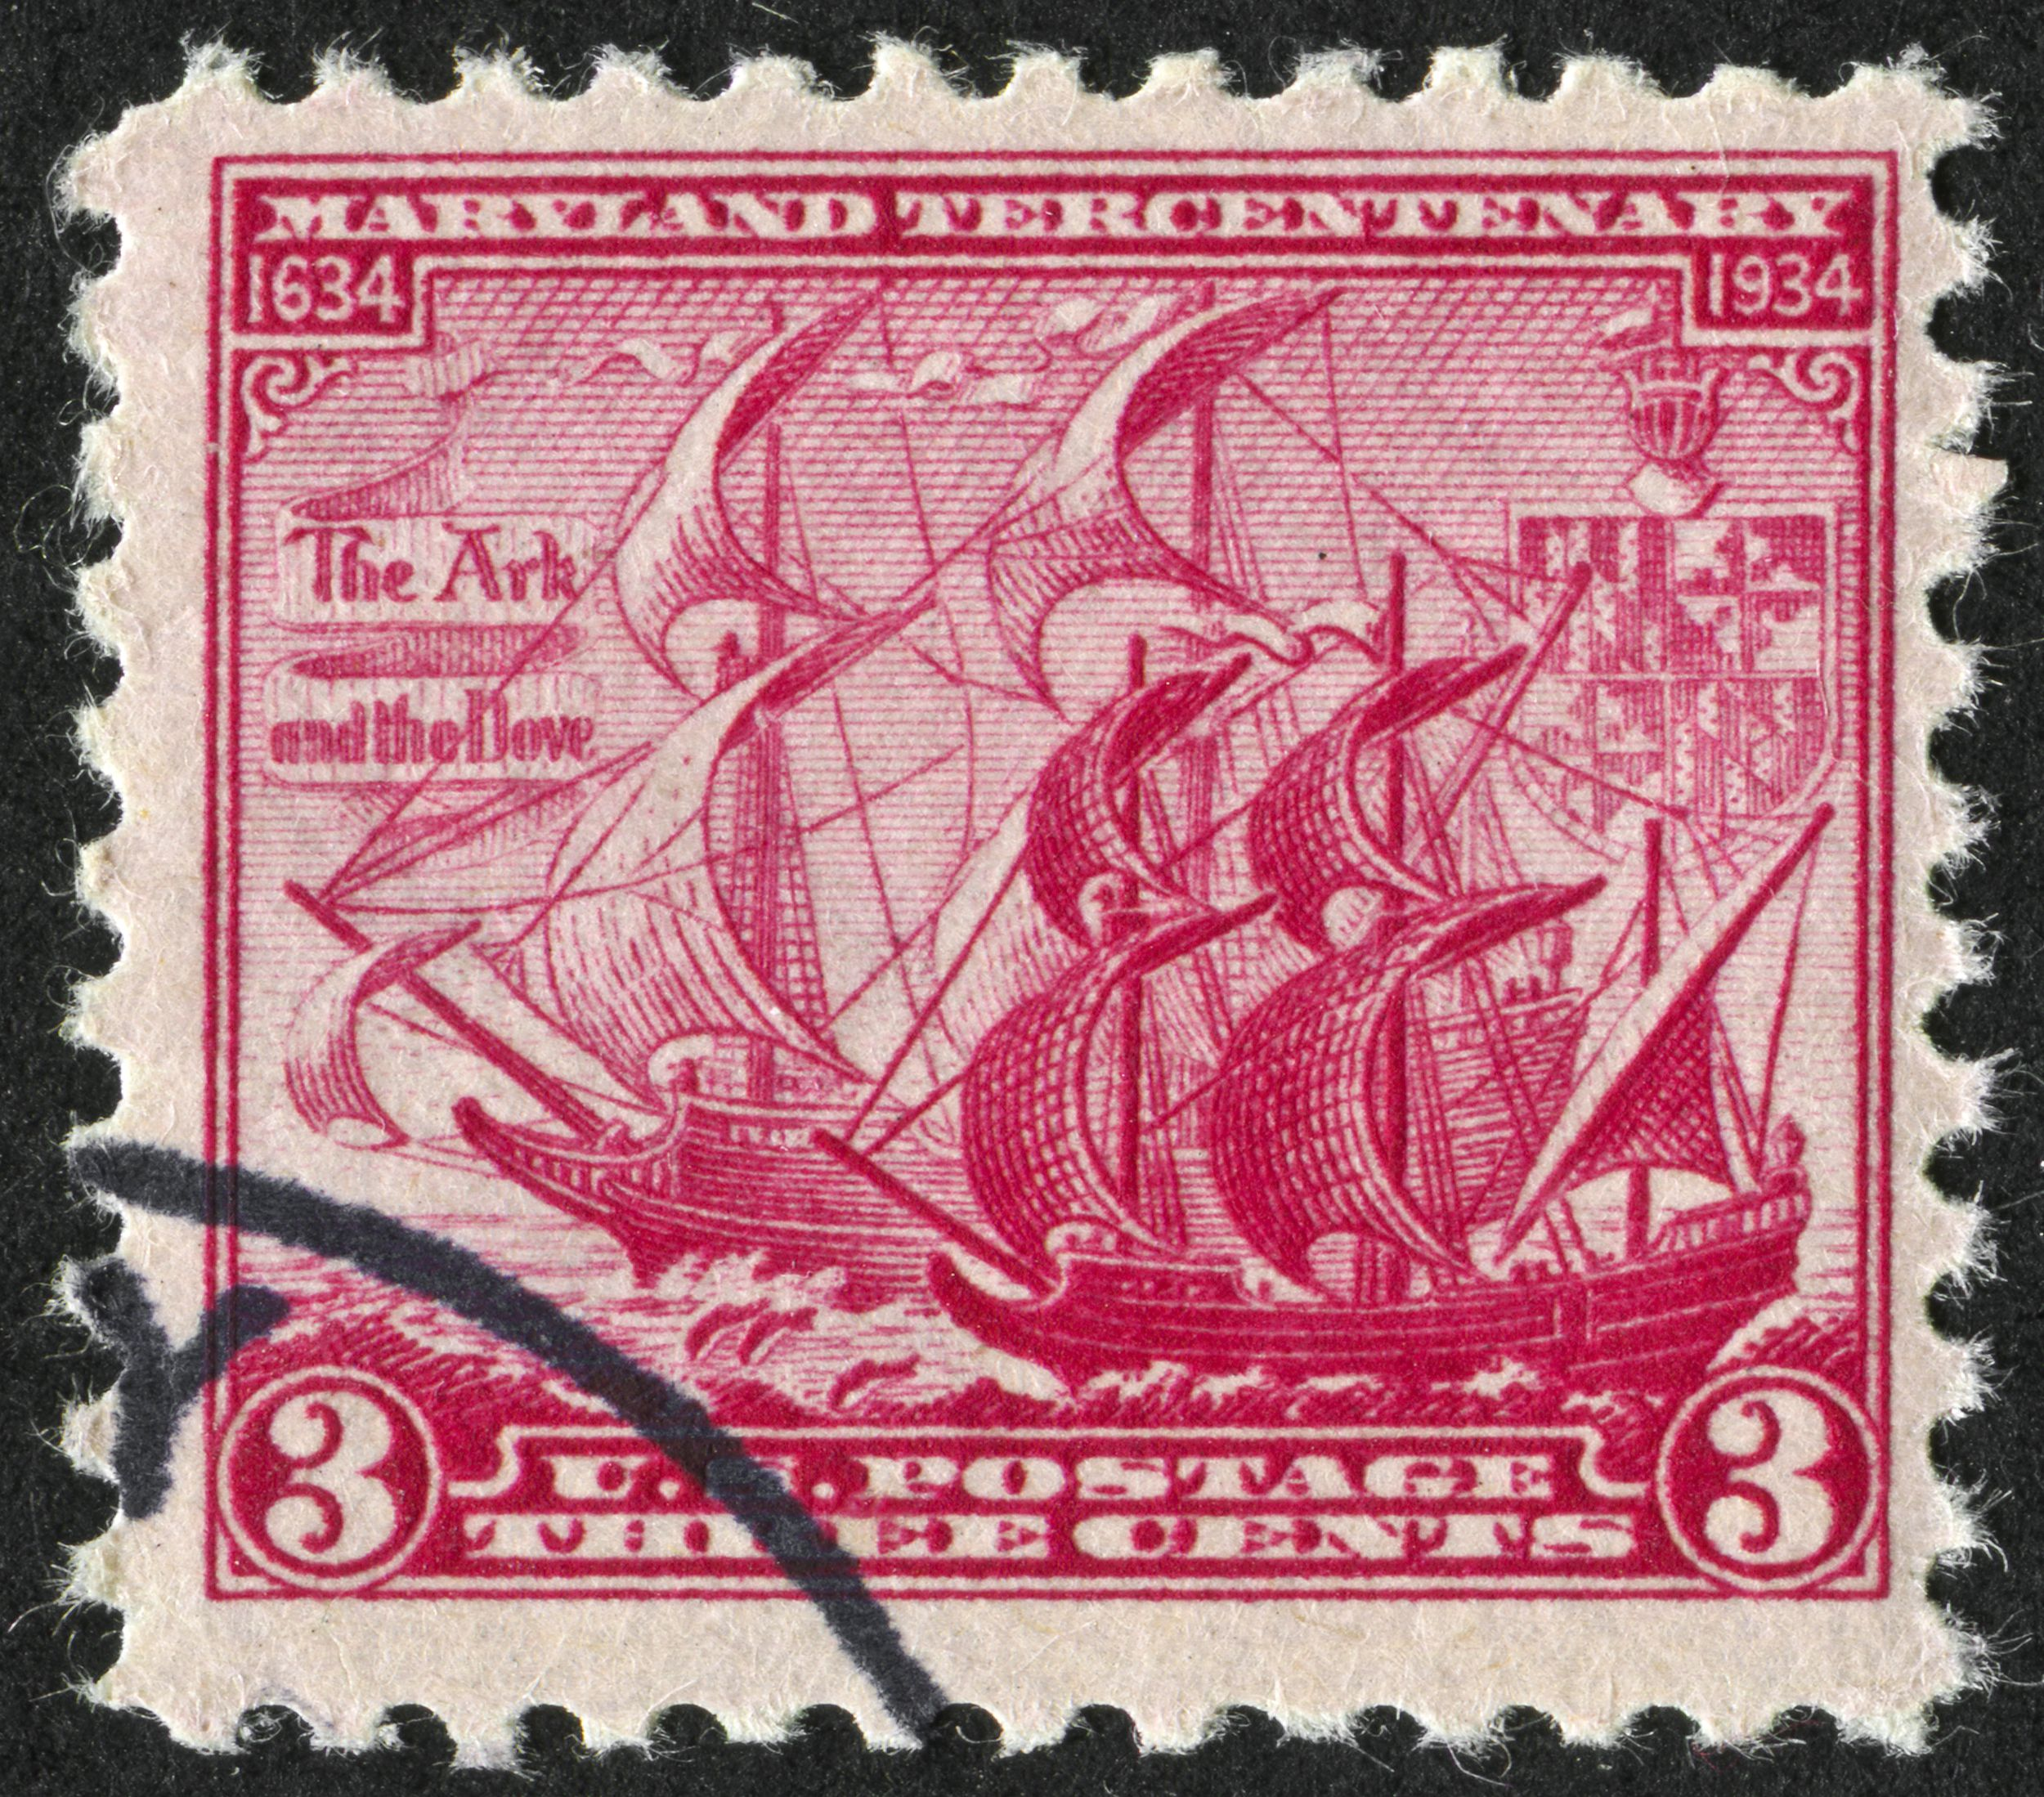 Cancelled Stamp From The United States Commemorating The 300th Anniversary Of Maryland, USA featuring the Ark and the Dove